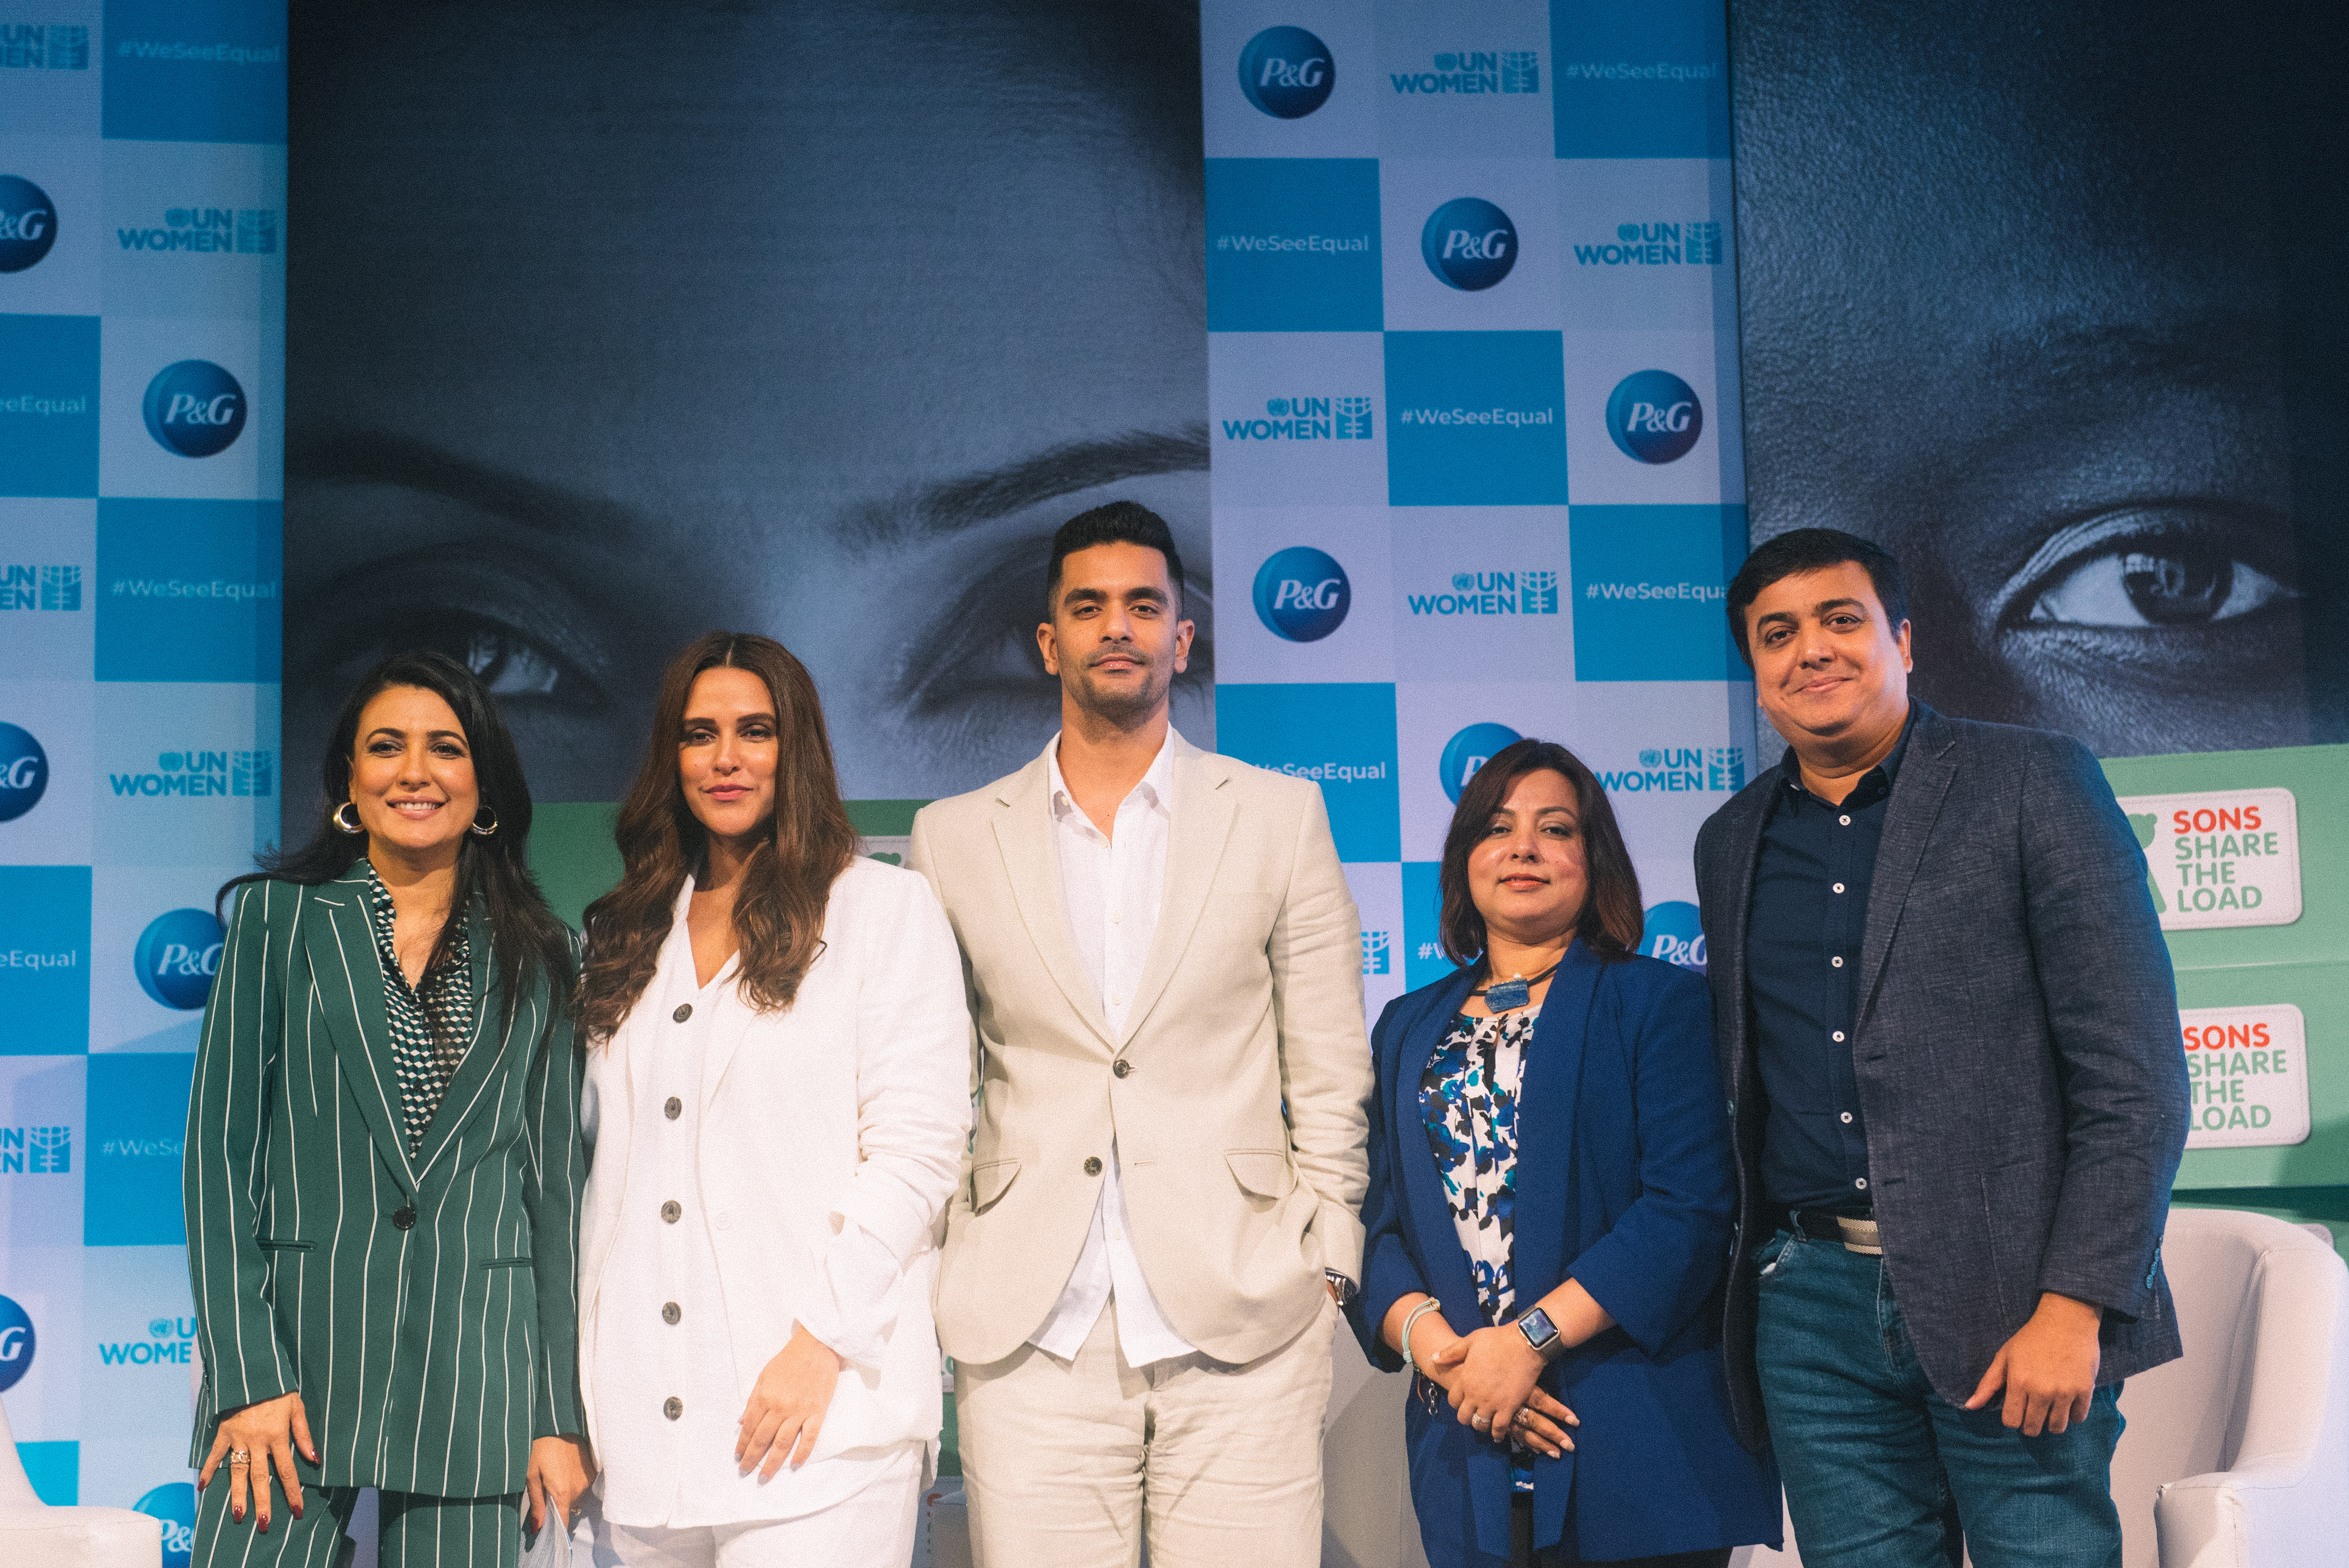 The panellists (from left) Mini Mathur, Neha Dhupia, Angad Bedi, Balaka Niyazee and Kausar Niyazee stand together for sharing the load at work, and home. Photo courtesy: P&G